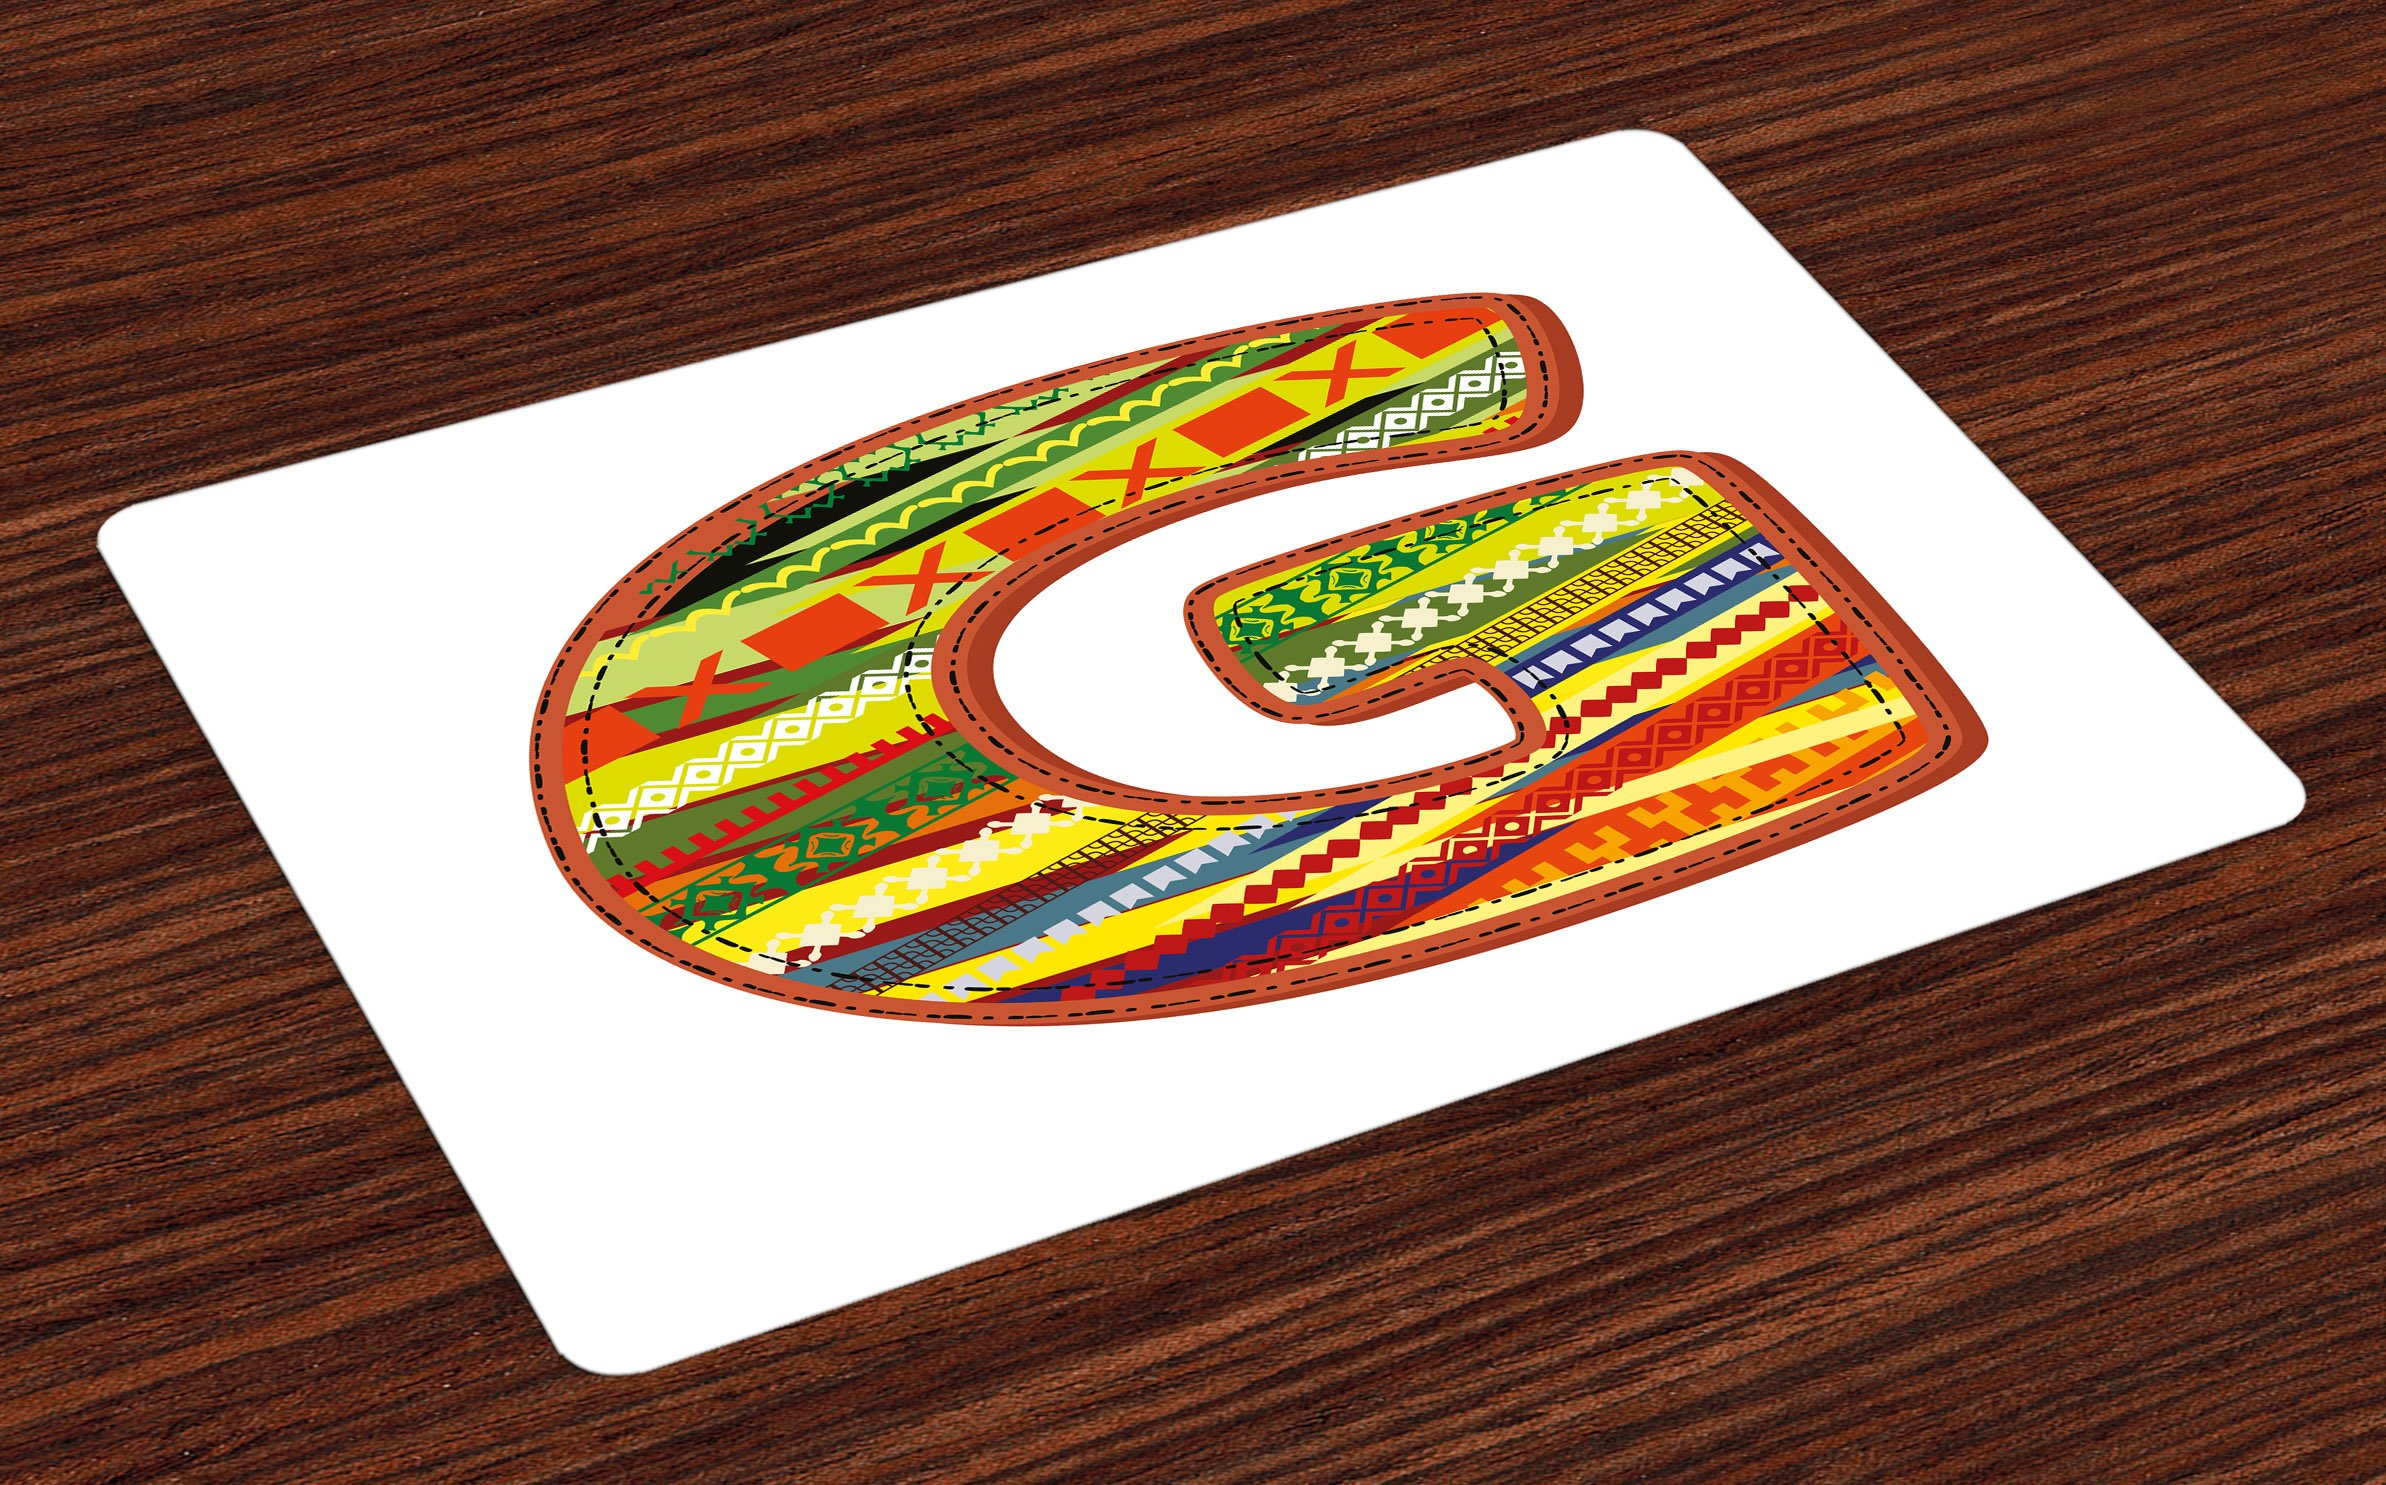 Ambesonne Letter G Place Mats Set of 4, G Letter Character Language System Learning College Surname Red Calligraphy Design, Washable Fabric Placemats for Dining Room Kitchen Table Decor, Multicolor